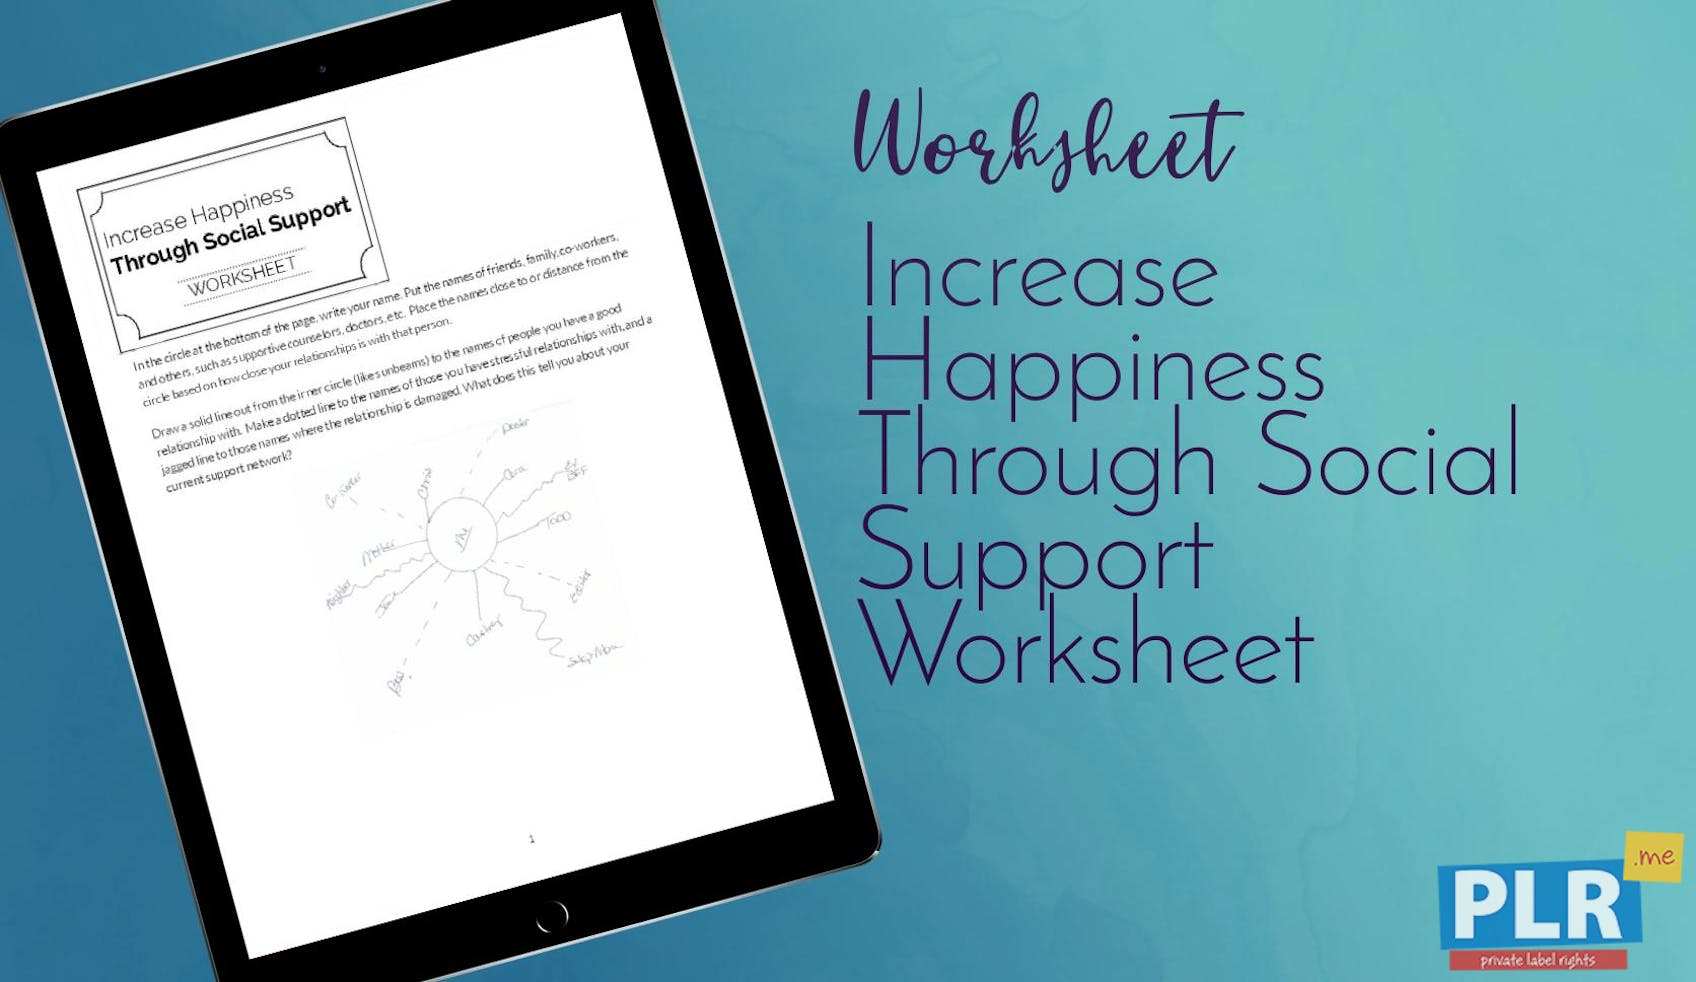 Increase Happiness Through Social Support Worksheet